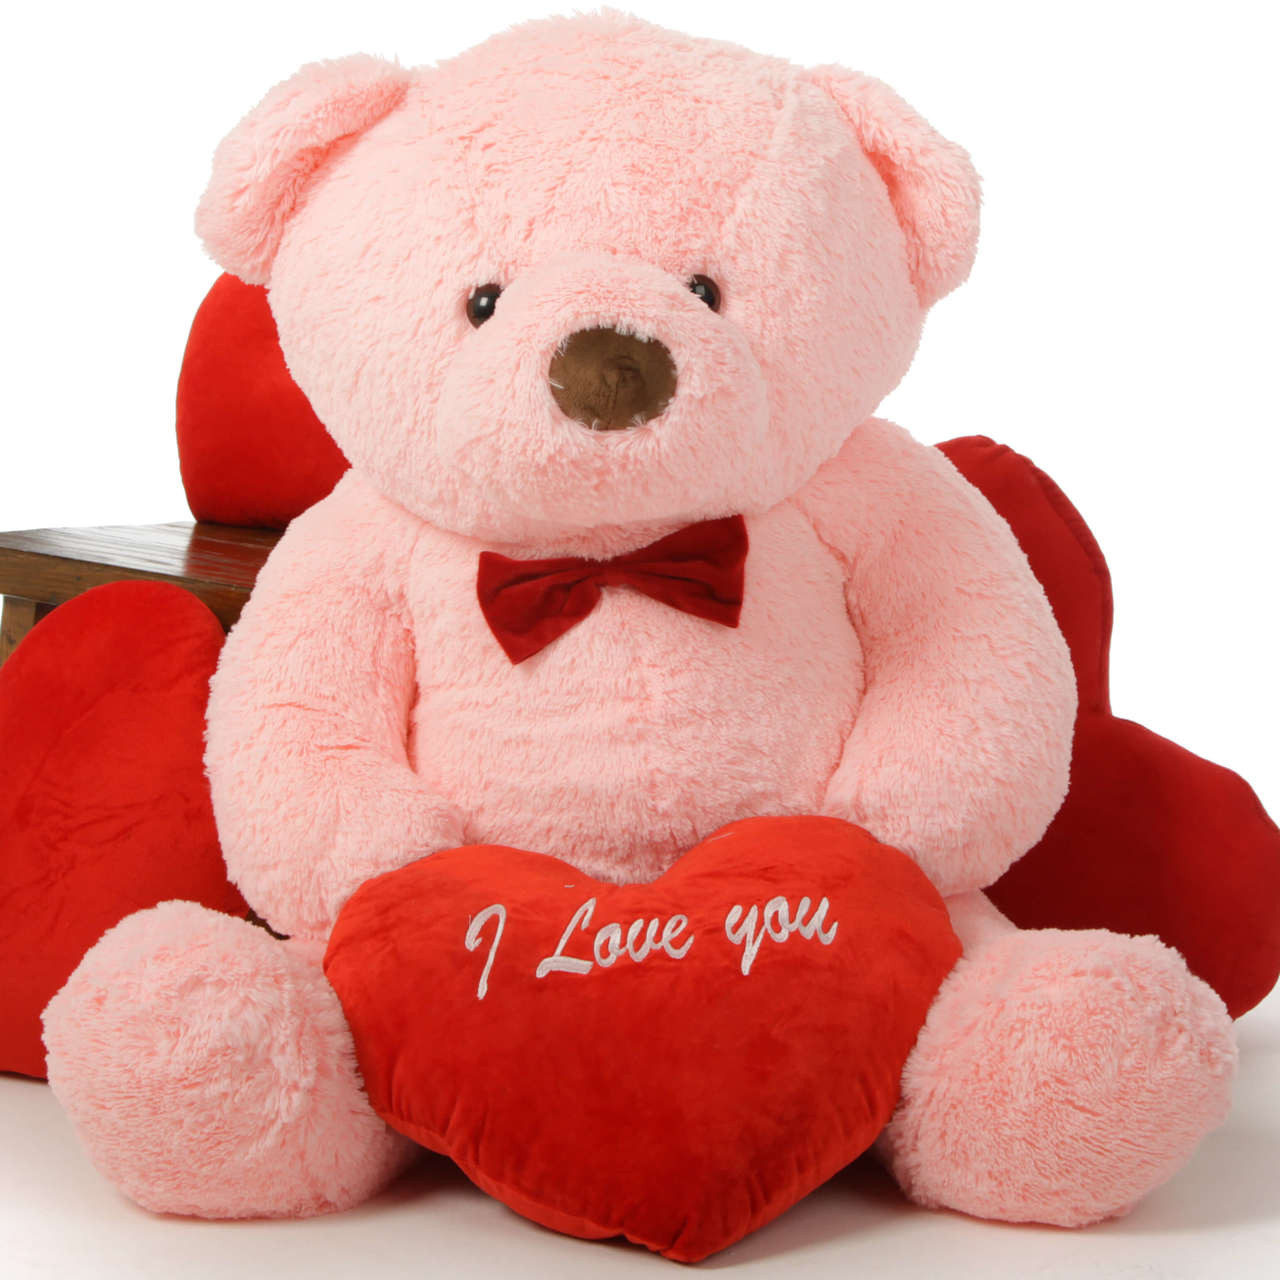 48in Giant Valentines Day Teddy Bears Have Red I Love You